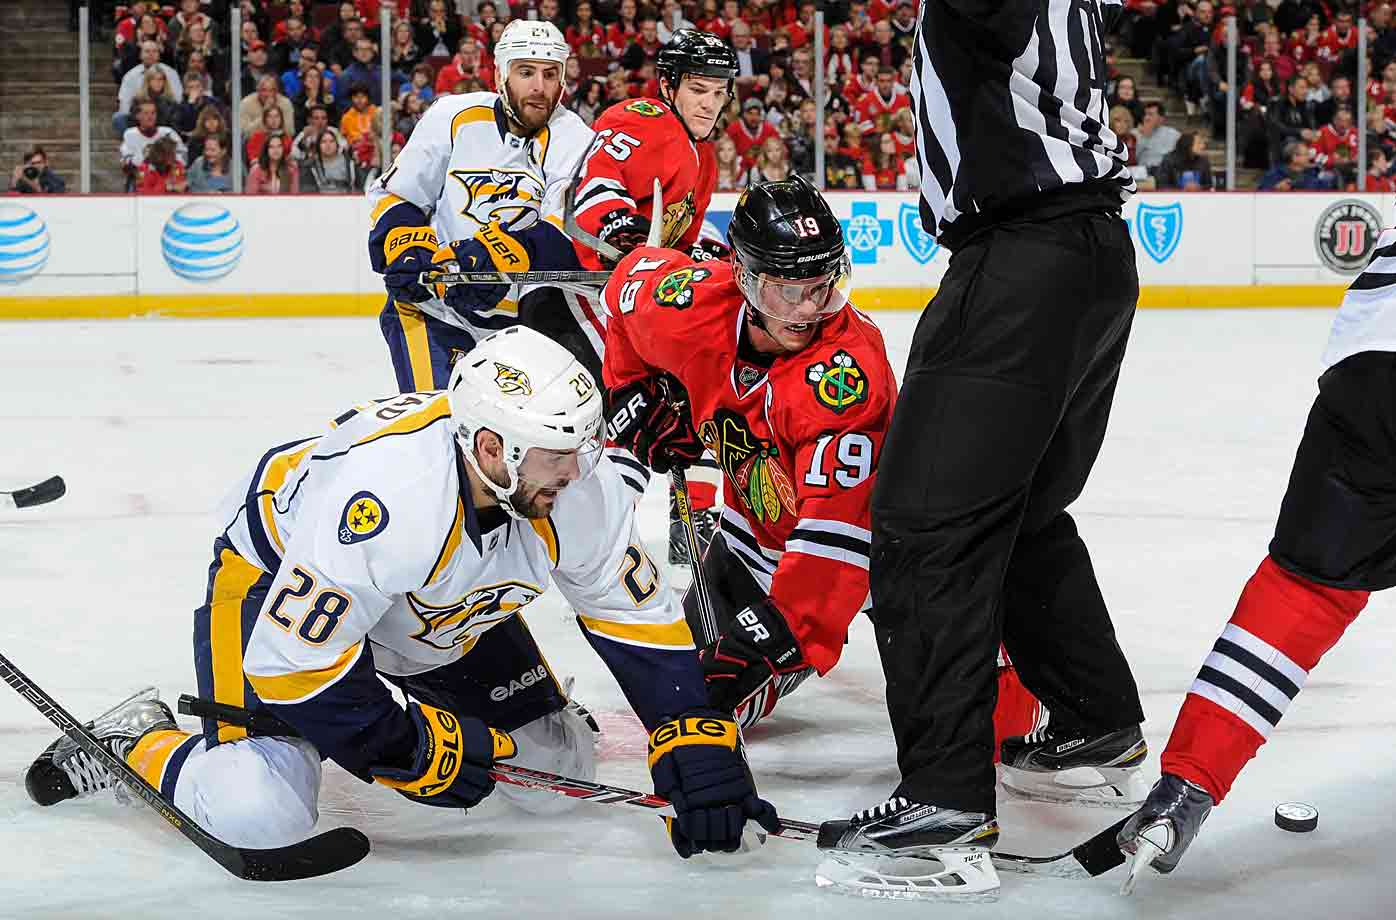 The ever elusive puck slipped through the ref's five hole at Chicago's United Center as the Predators battled the host Blackhawks on Oct. 18.